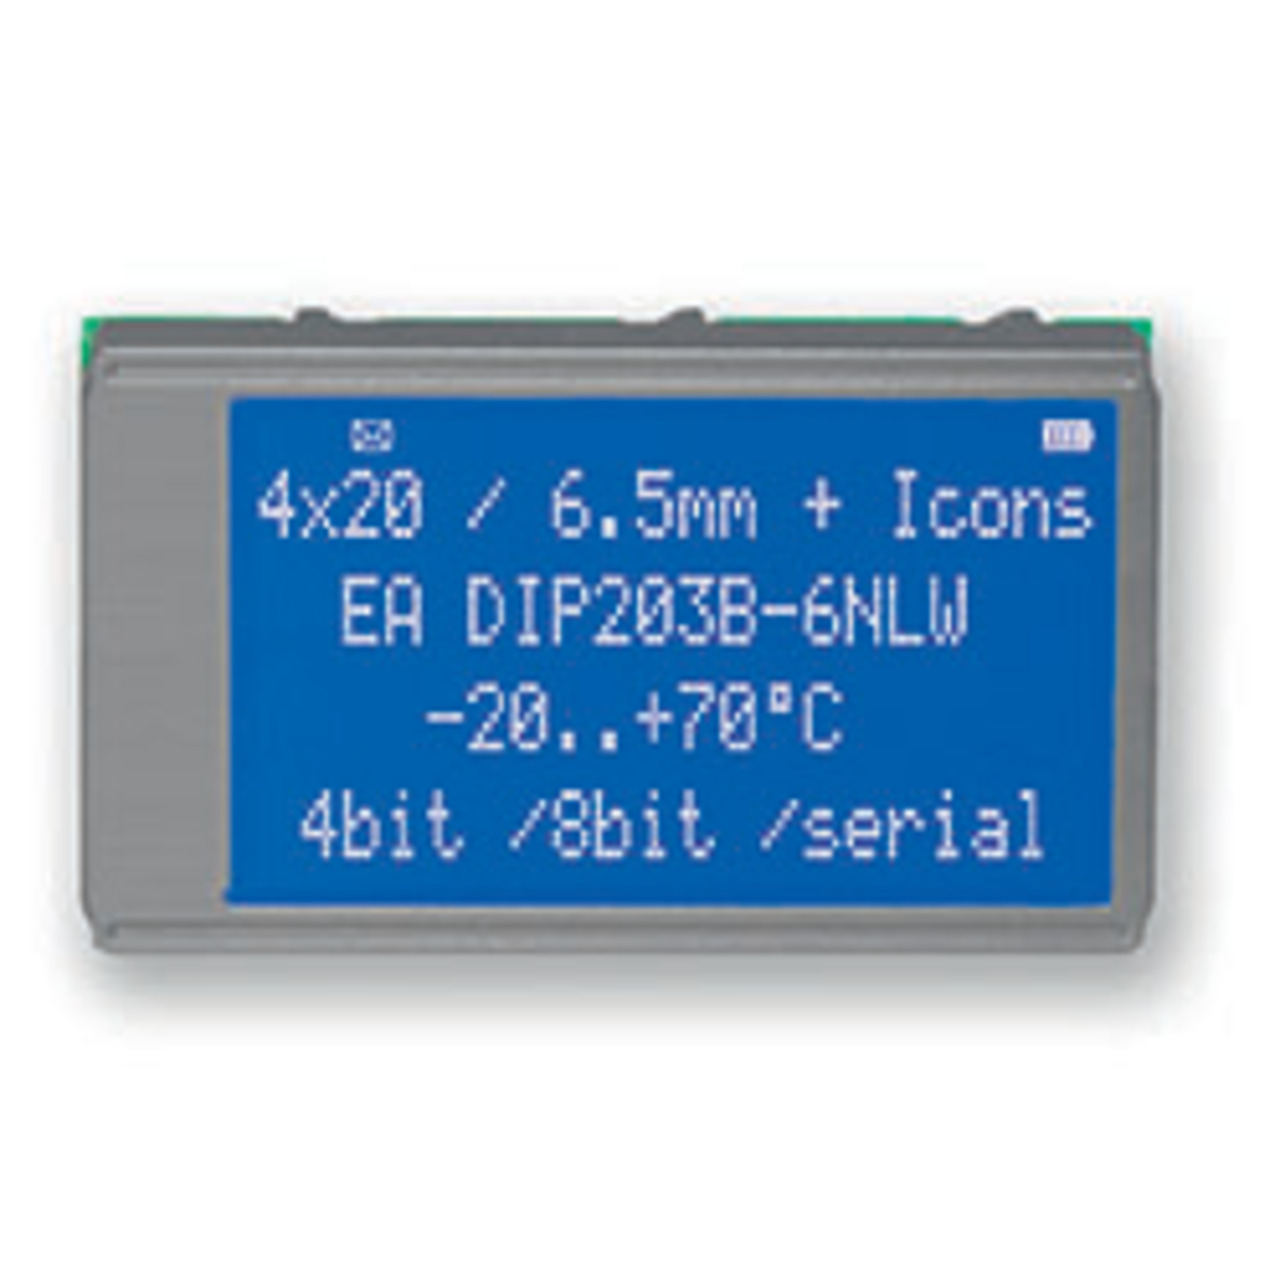 Electronic Assembly LCD-Punktmatrixdisplay EADIP203B-6NLW 4x20- 6-45 mm